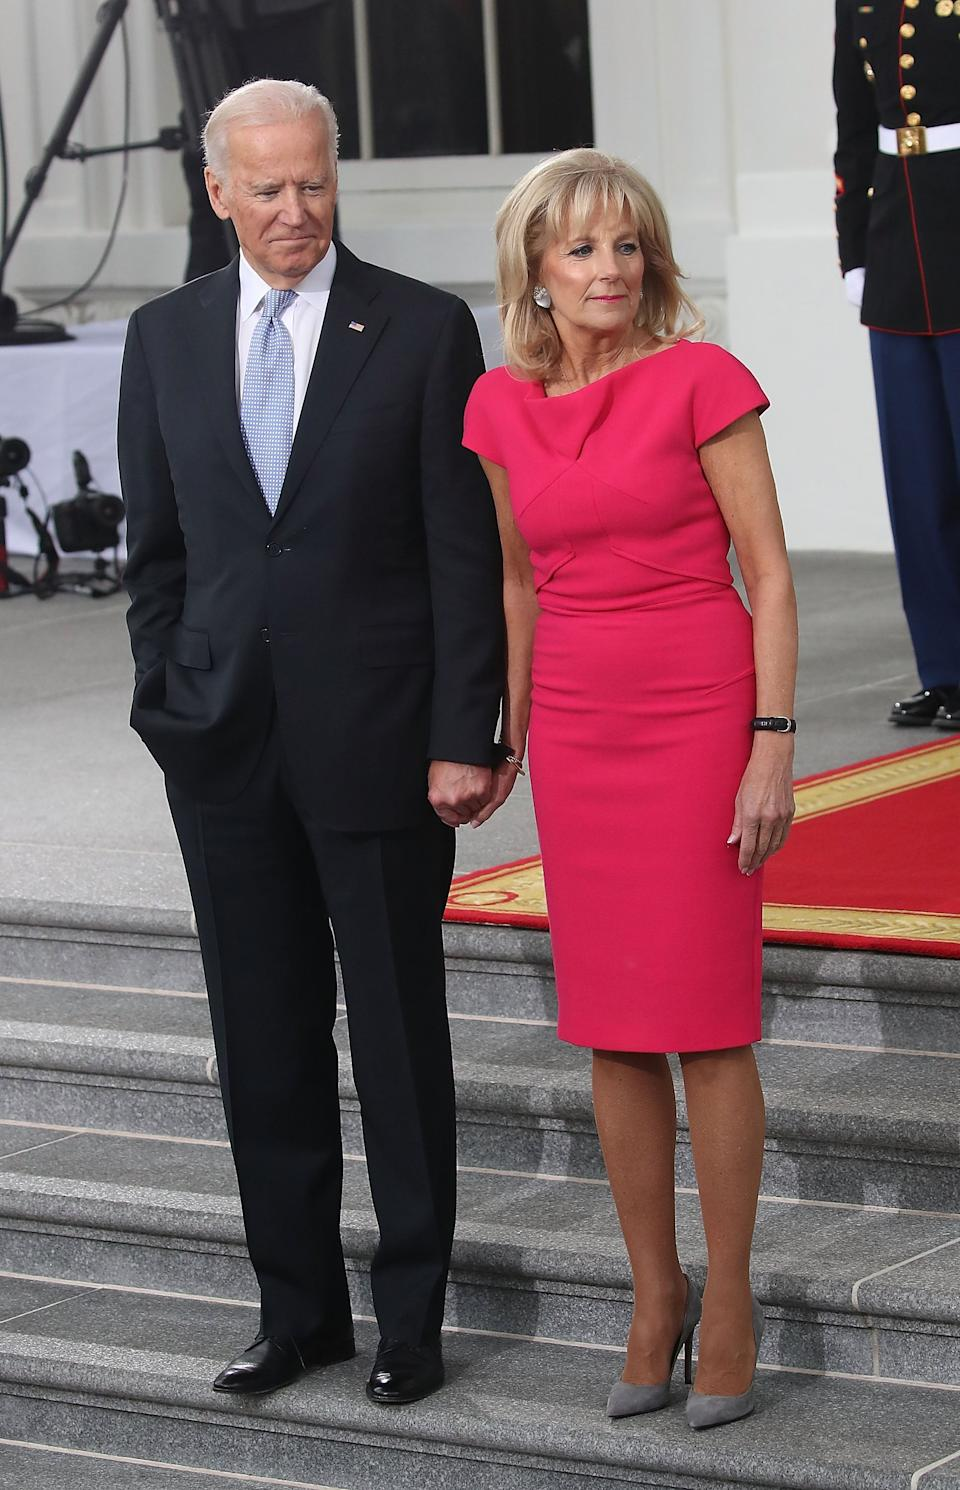 Jill Biden wears a hot pink shift dress and pumps, January 2017Getty Images